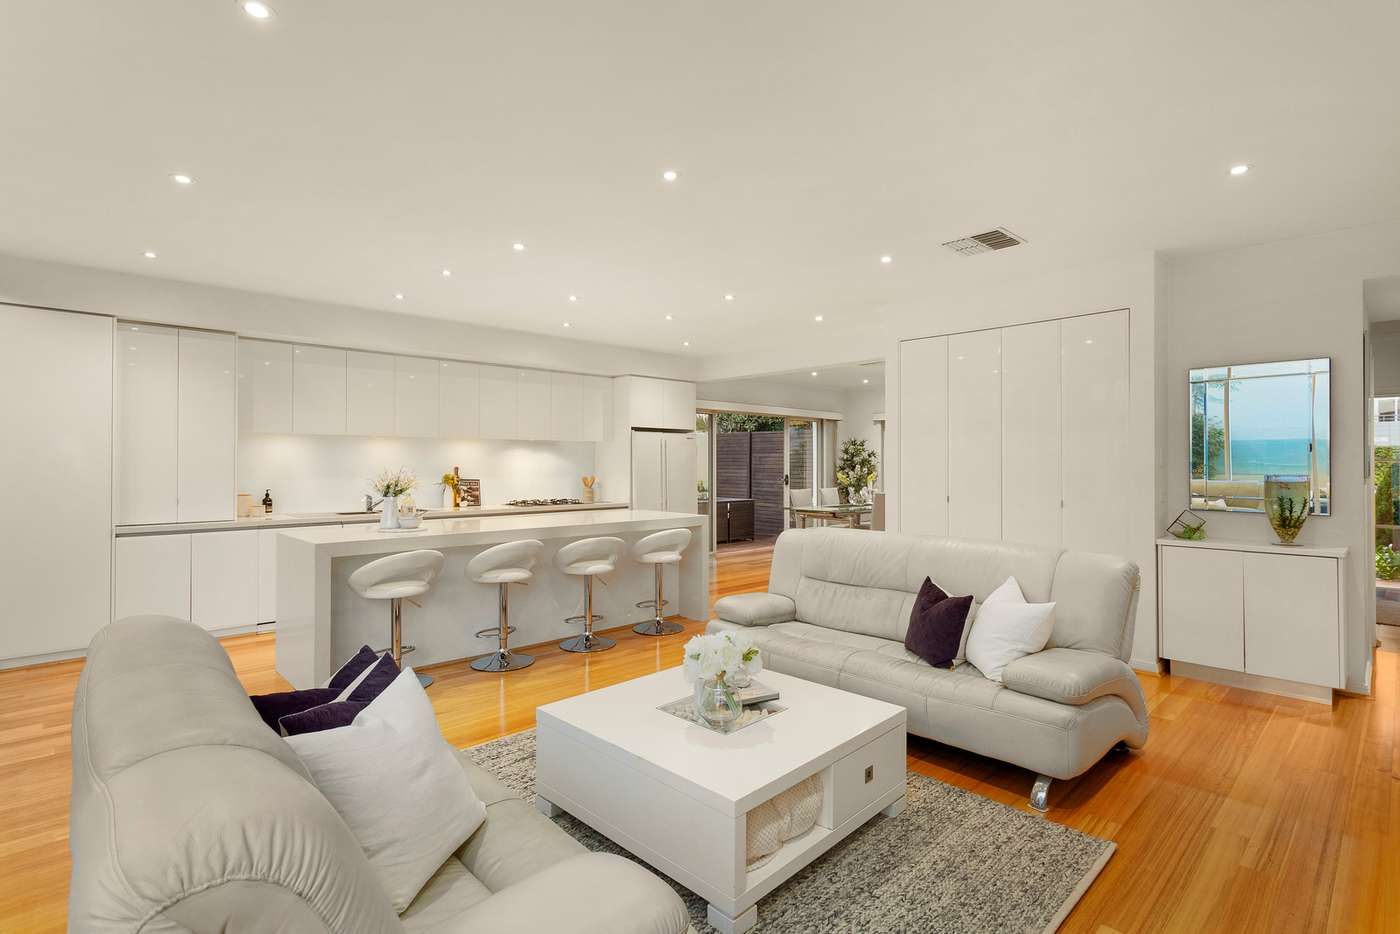 Sixth view of Homely house listing, 112 Beach Street, Port Melbourne VIC 3207